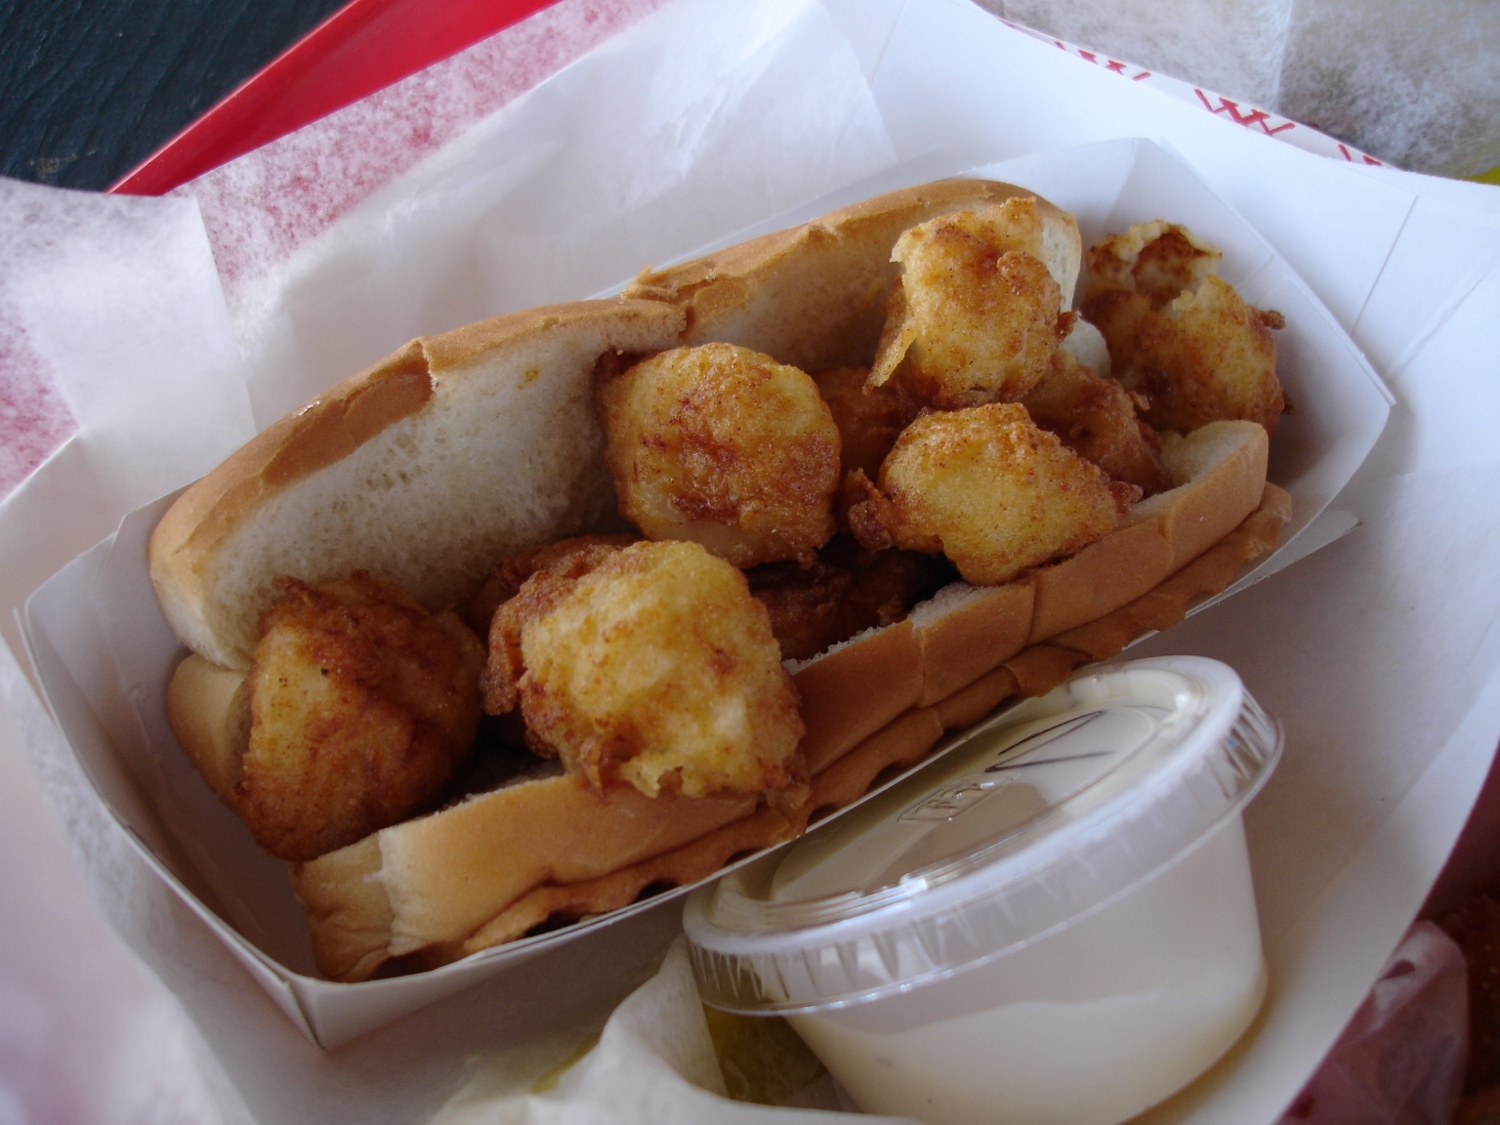 The fried scallop roll, while not as overflowingly apportioned as its coastal cousins, is, like all the seafood served here, made with fresh scallops, expertly fried.